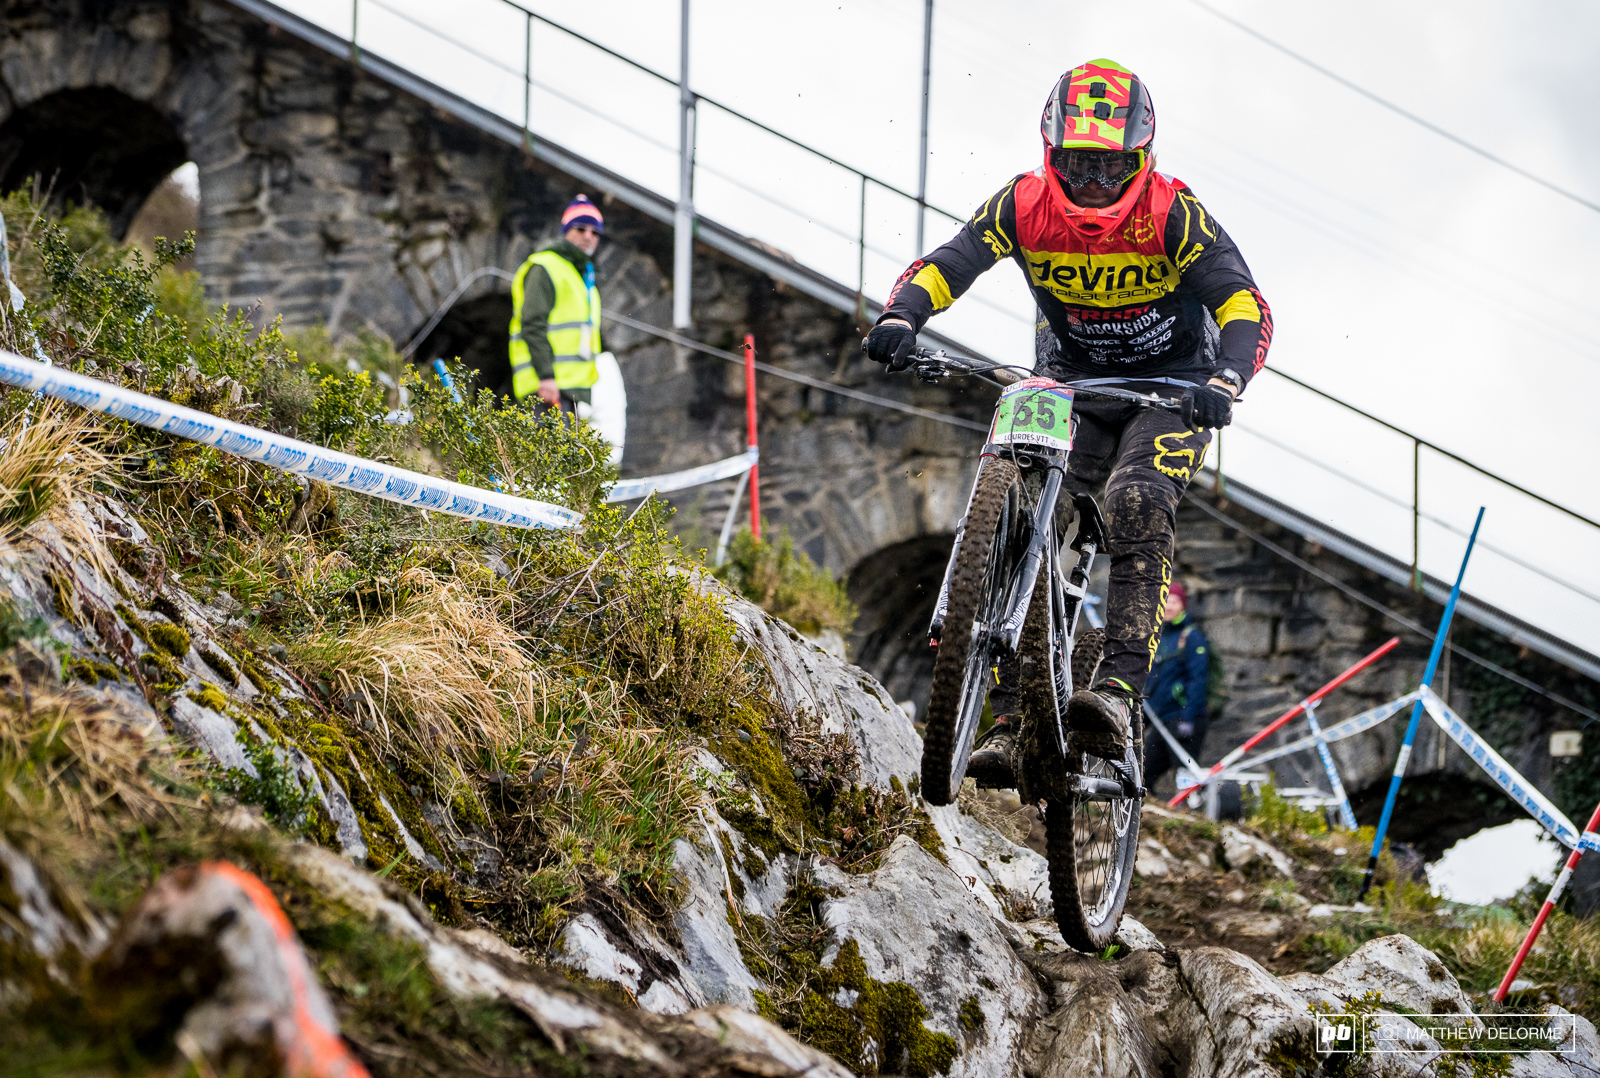 We last saw Brage Vestavik at Hafjell Worlds a couple years back as a course sweep and he looked like one to watch. Now he is racing as a Junior with Devinci Global racing. He still looks to be promising young talent.